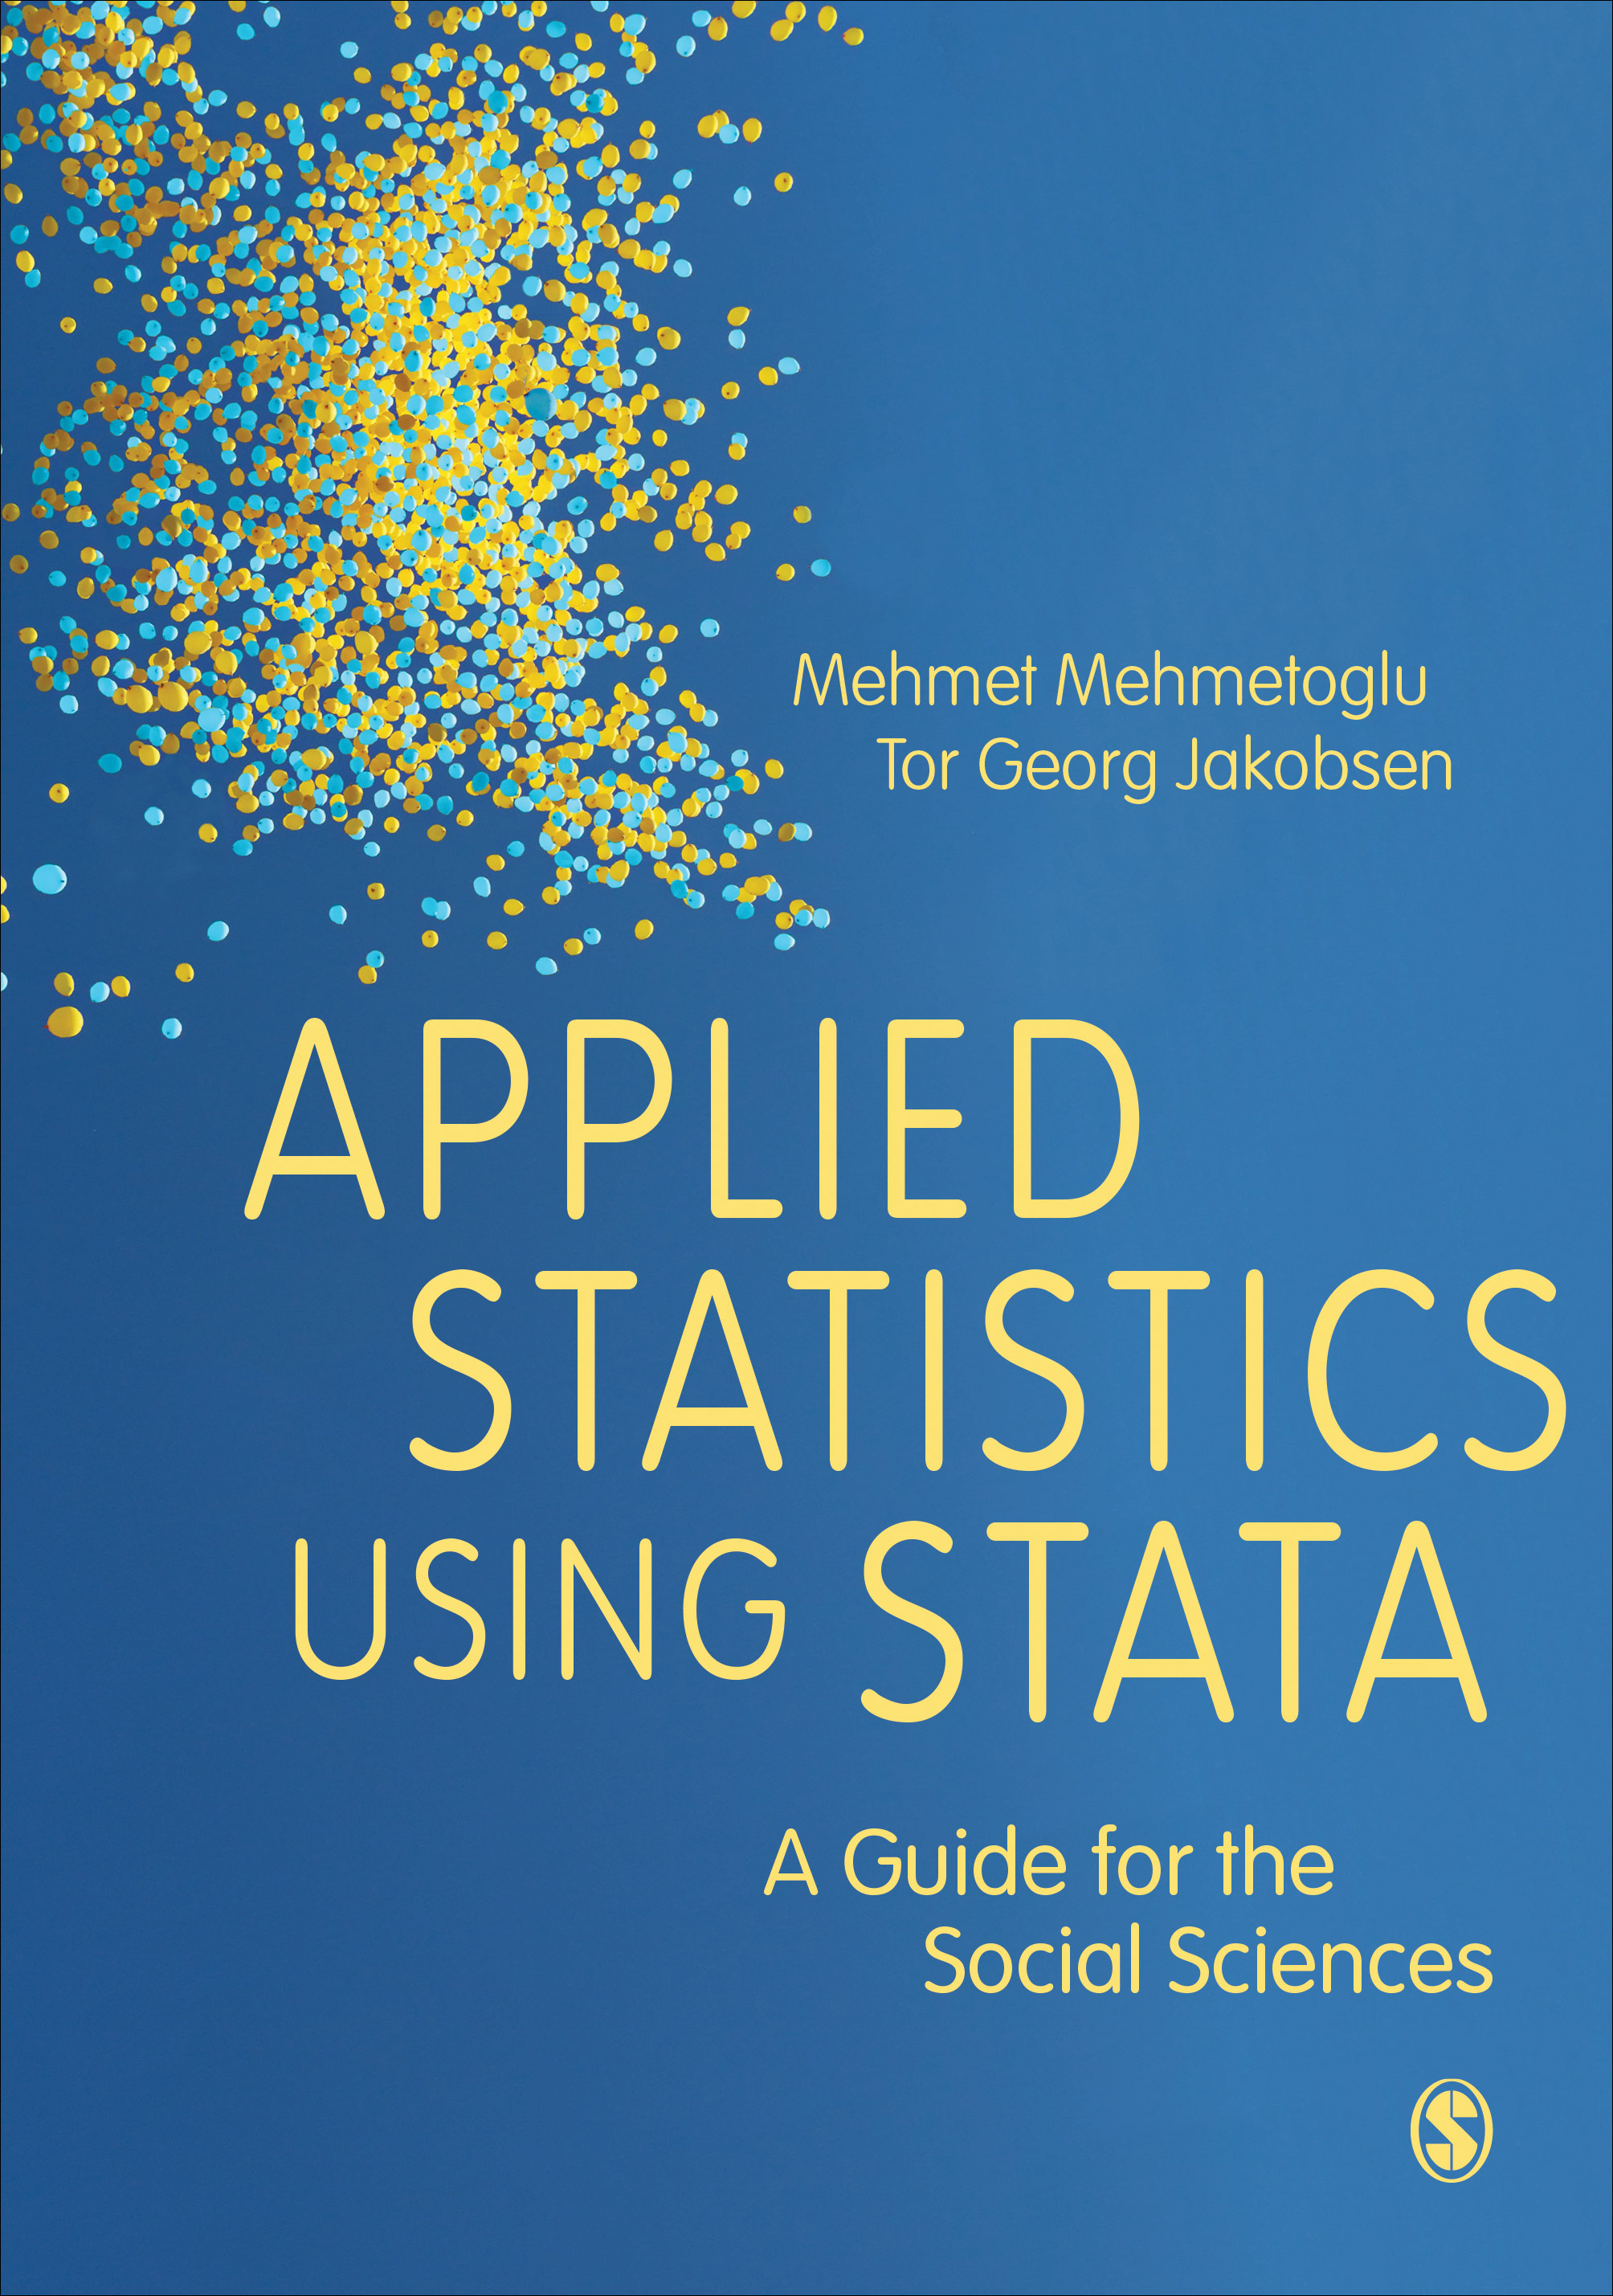 Applied Statistics Using Stata | SAGE Publications Inc